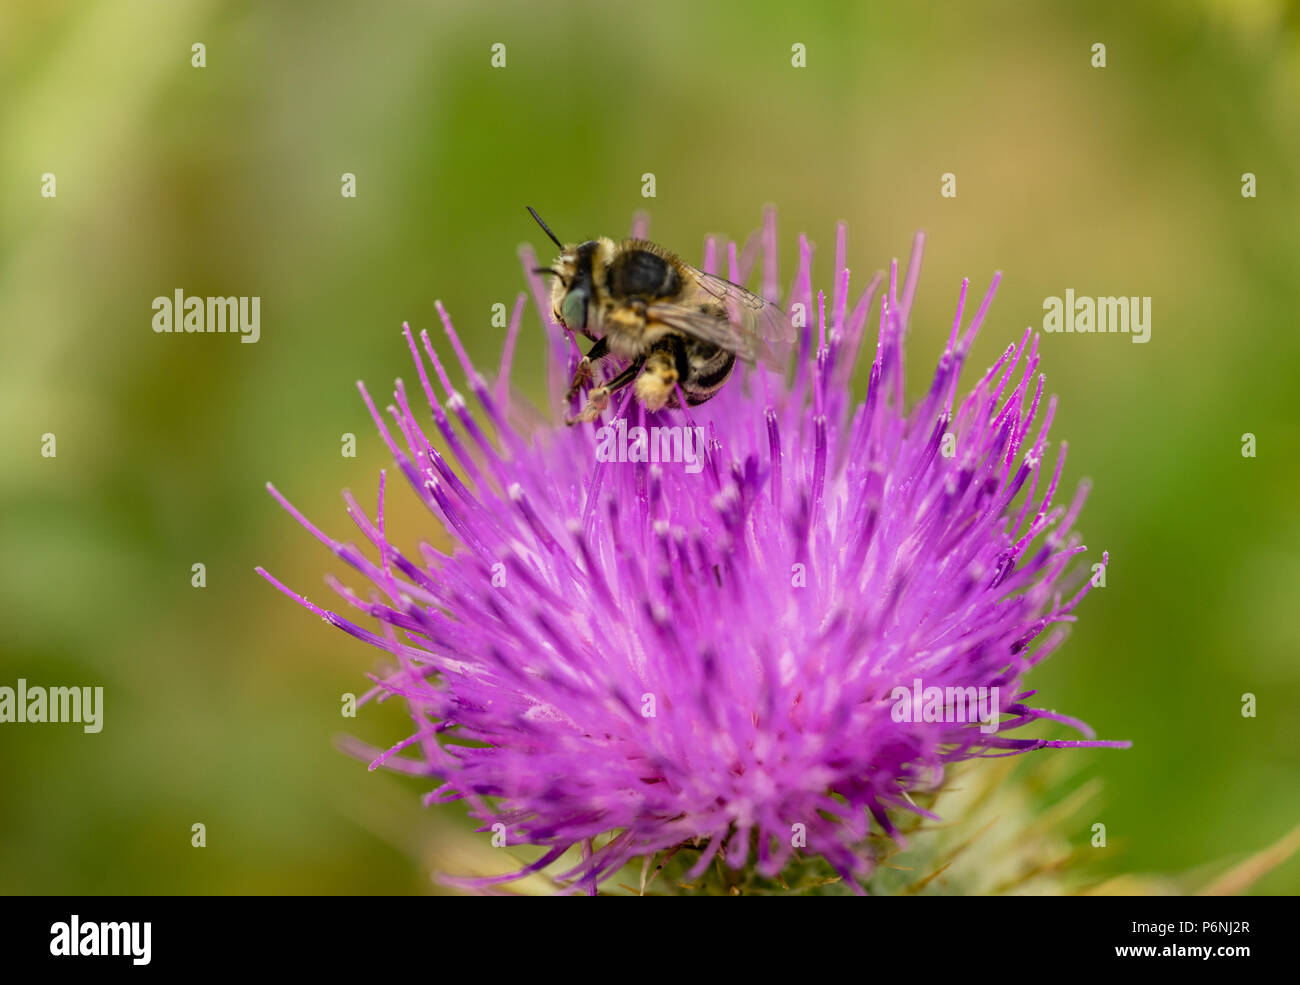 Macro/ close-up of a Western honey bee collecting pollen from a spear thistle flower - Stock Image